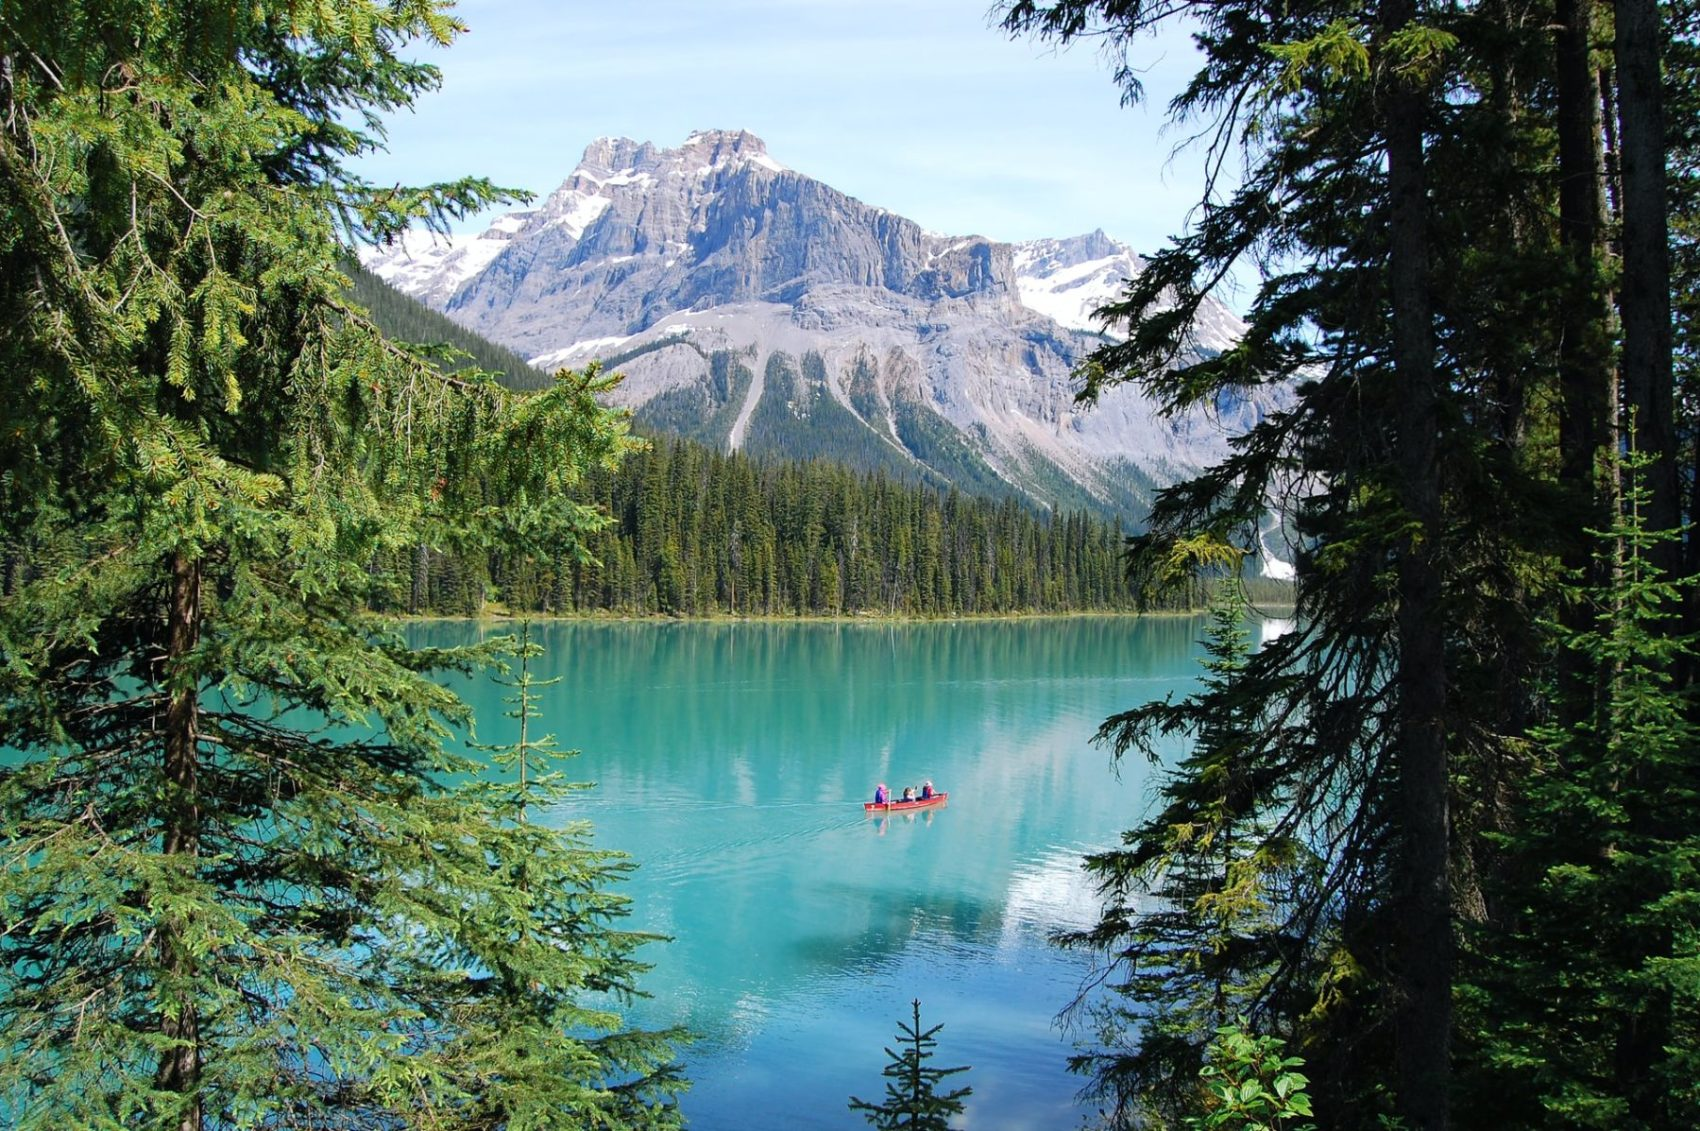 This is the image for my 2020 yearly review and shows lake in Canada.